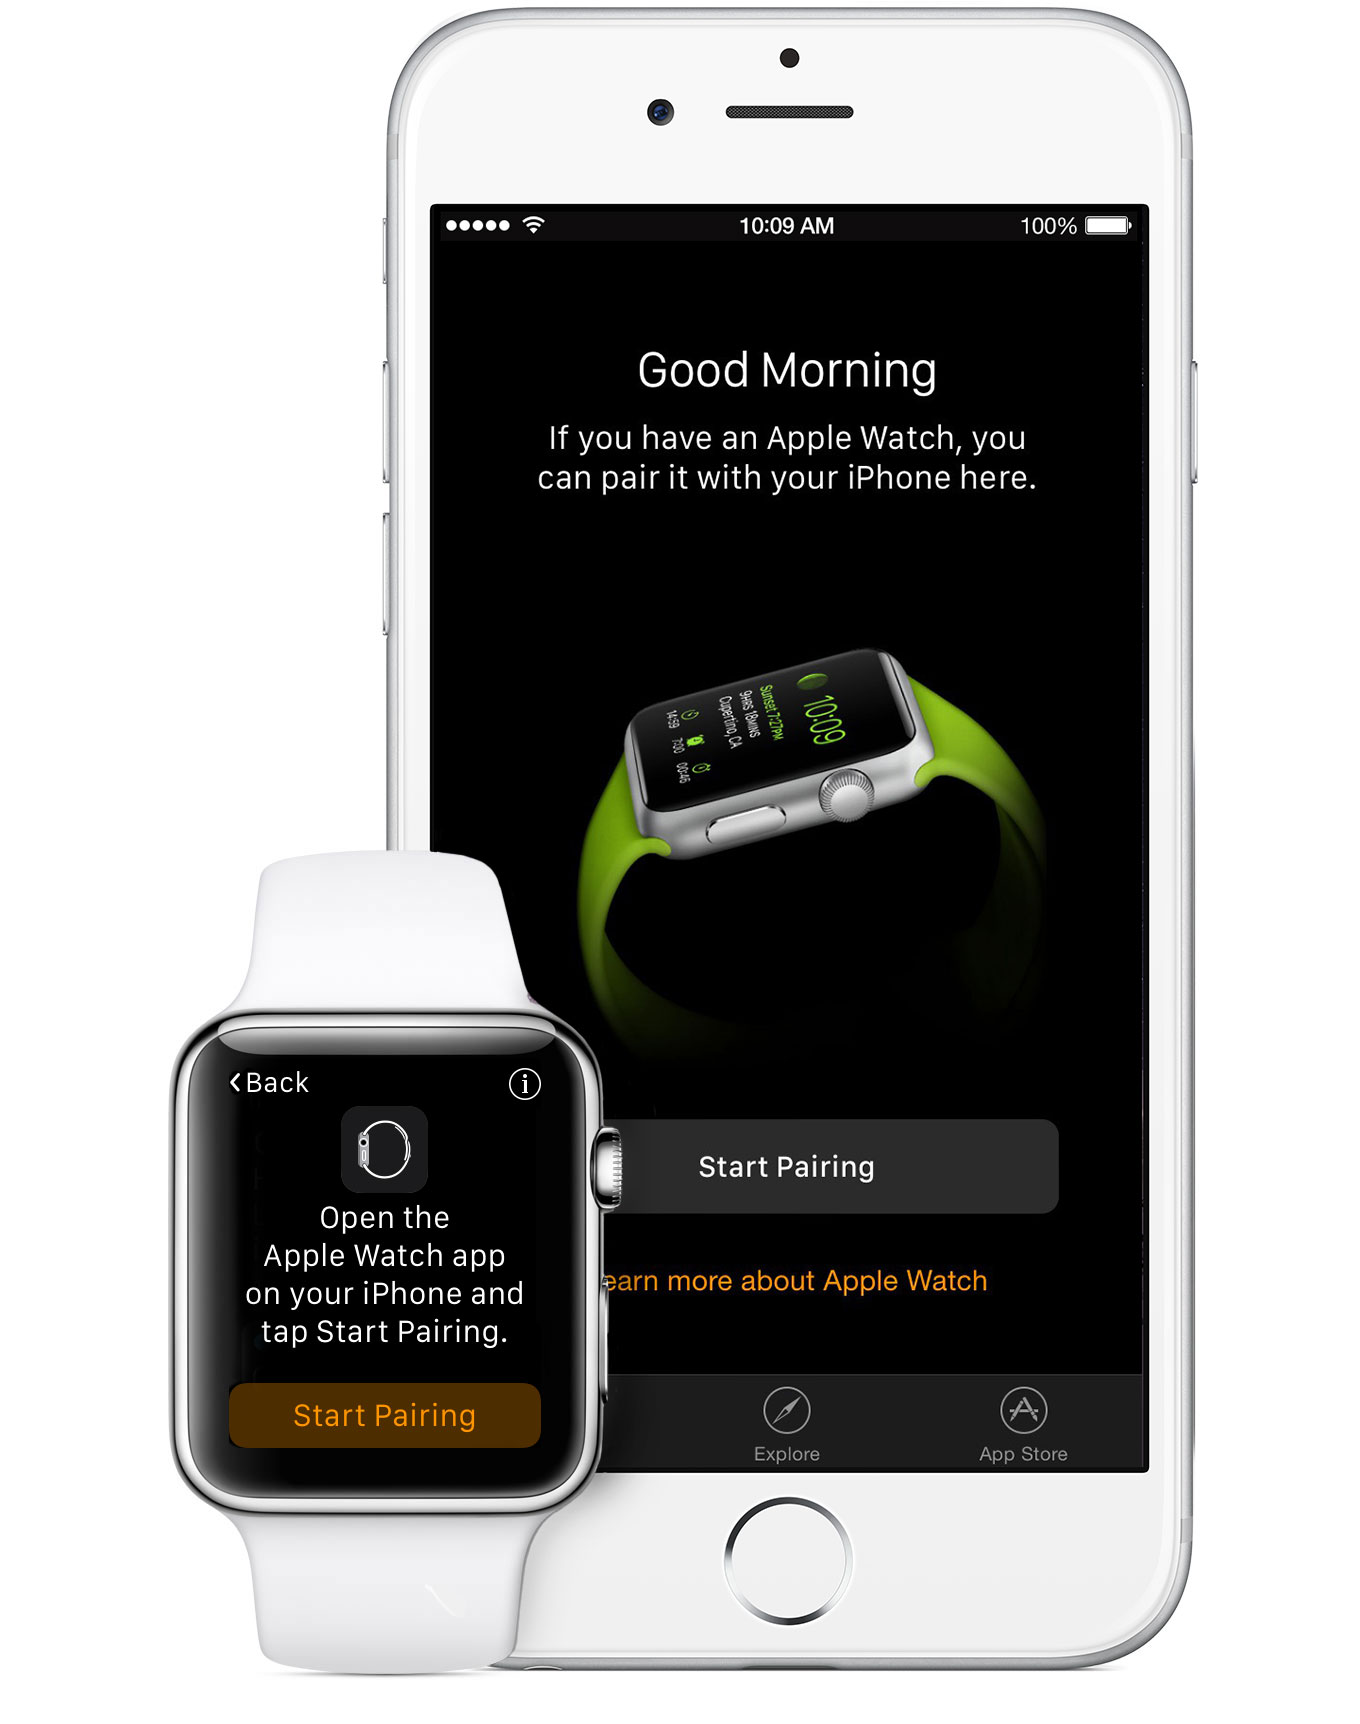 Set up and pair your Apple Watch